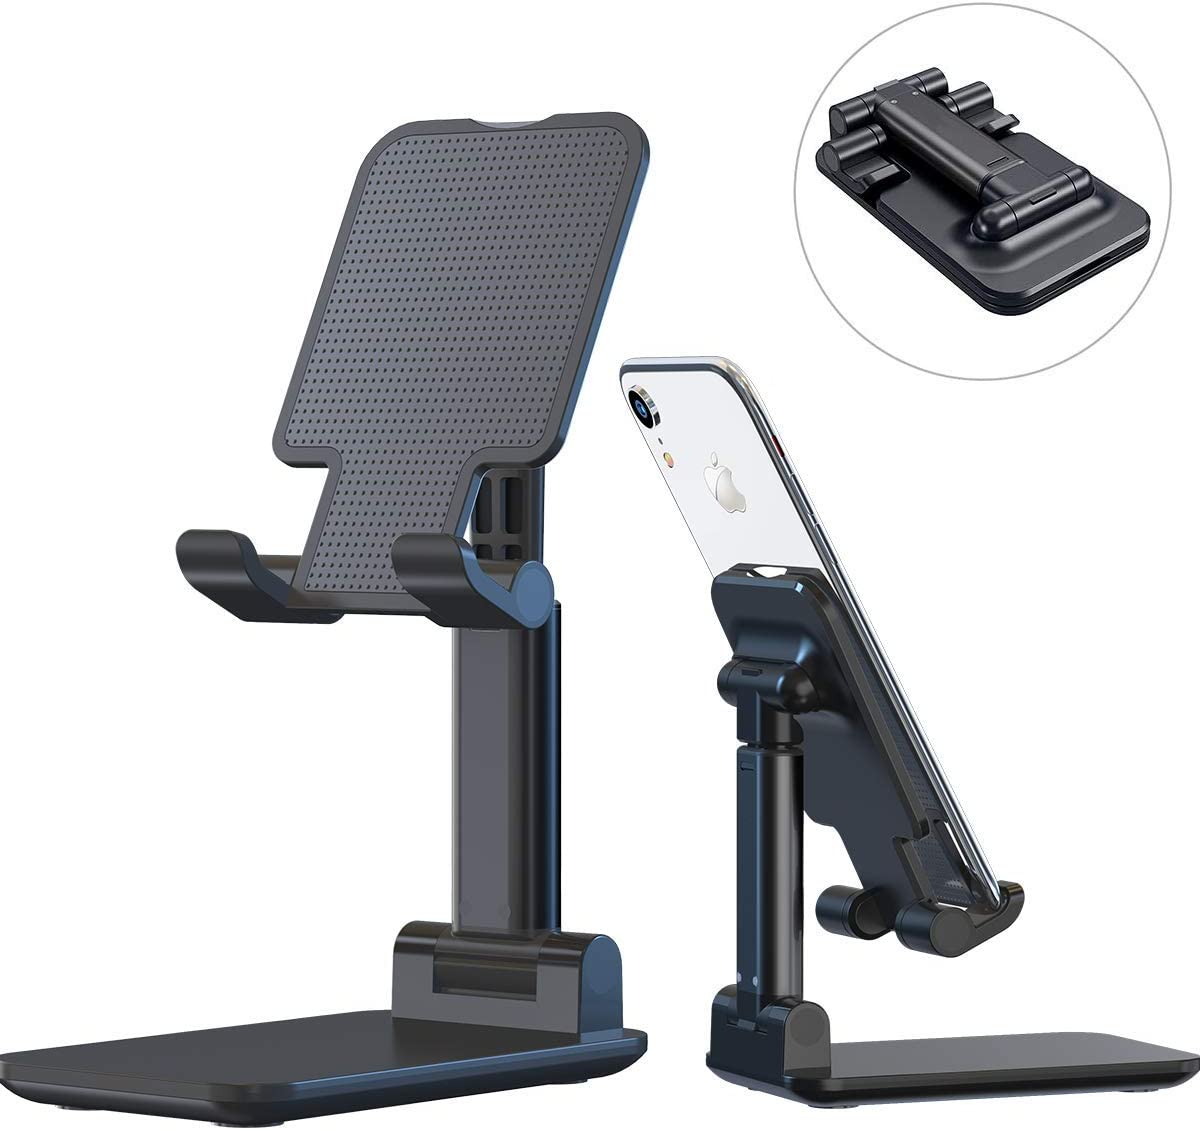 Adjustable Cell Phone Stand, Fully Foldable Desktop Phone Holder Cradle Dock Holder,Tablet Stand for iPhone X Xr Xs max All Smart Phones and Tablets,Ipad(Black)